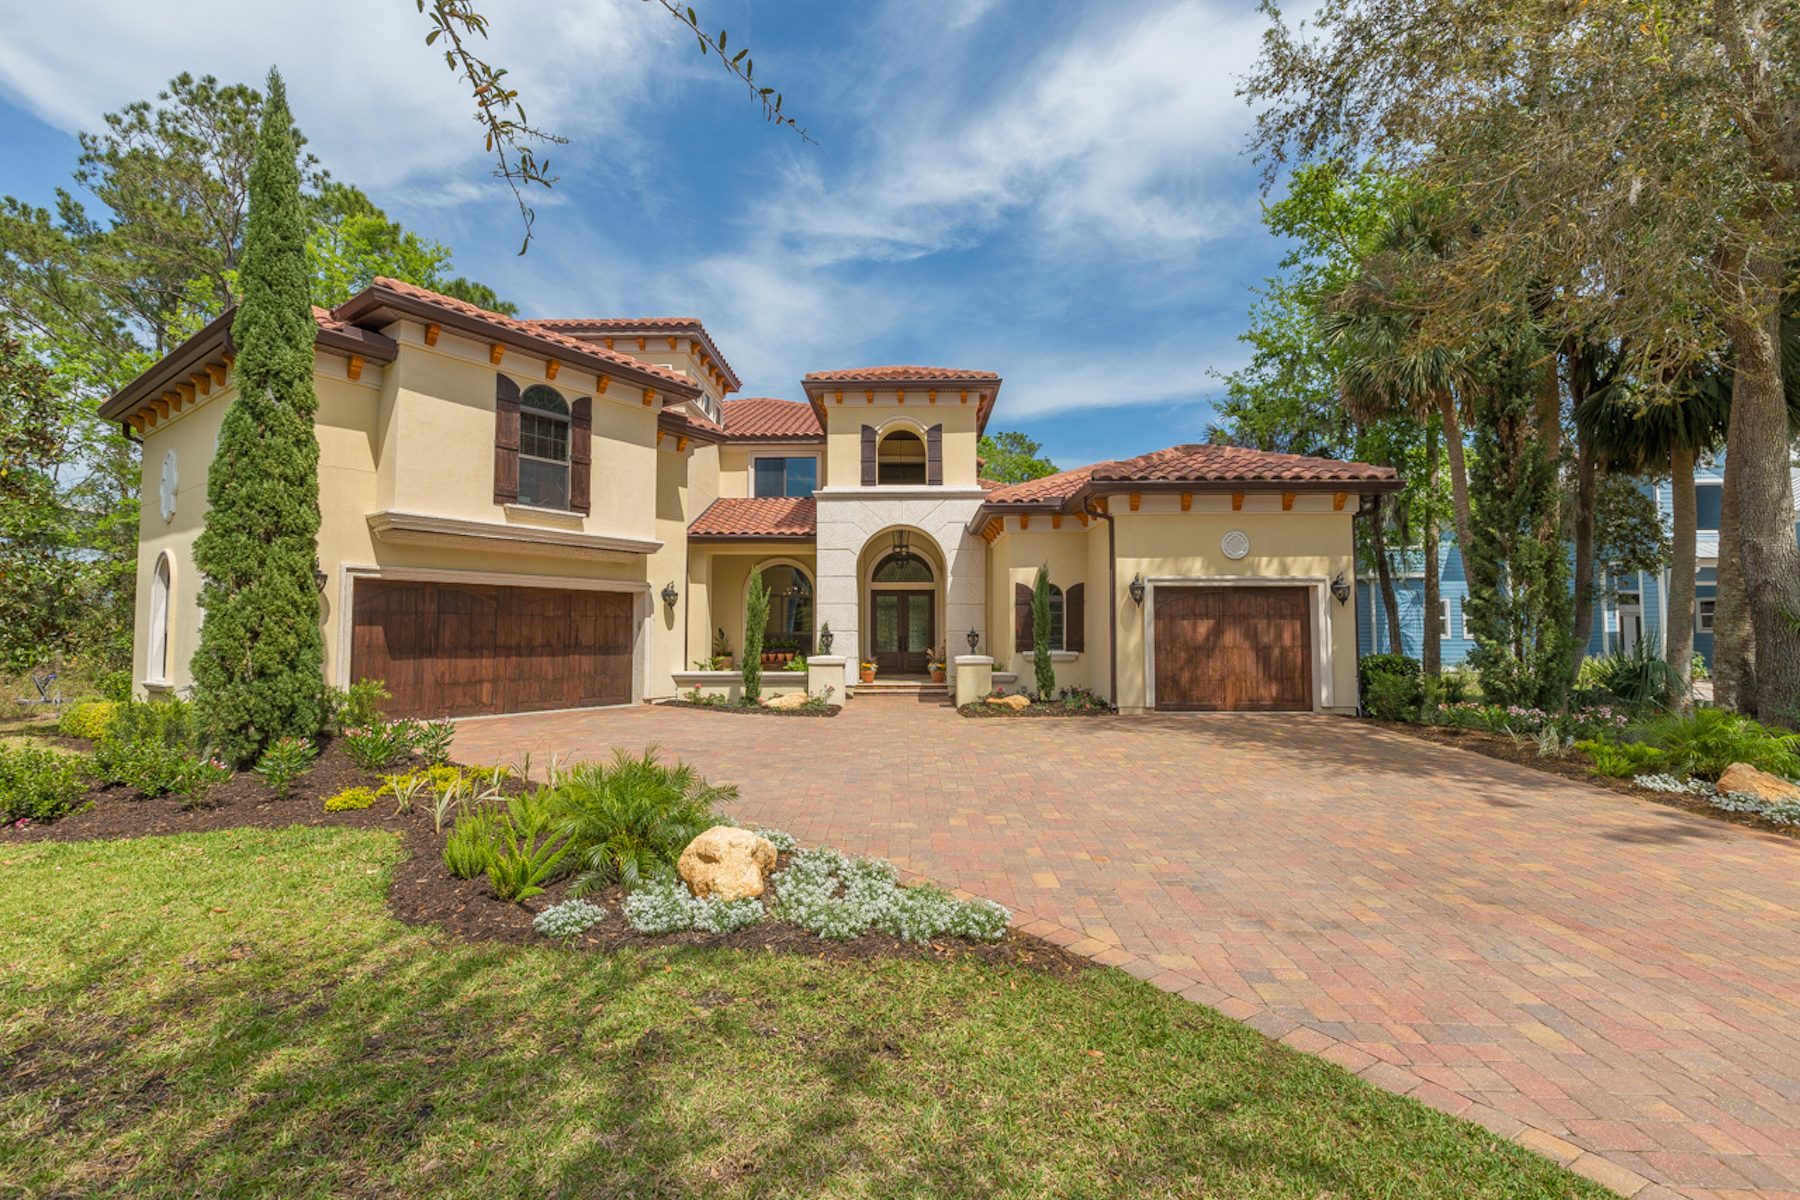 Vivienda unifamiliar por un Venta en Ponte Vedra Intracoastal Home 120 Preserve Haven View Ponte Vedra Beach, Florida, 32081 Estados Unidos